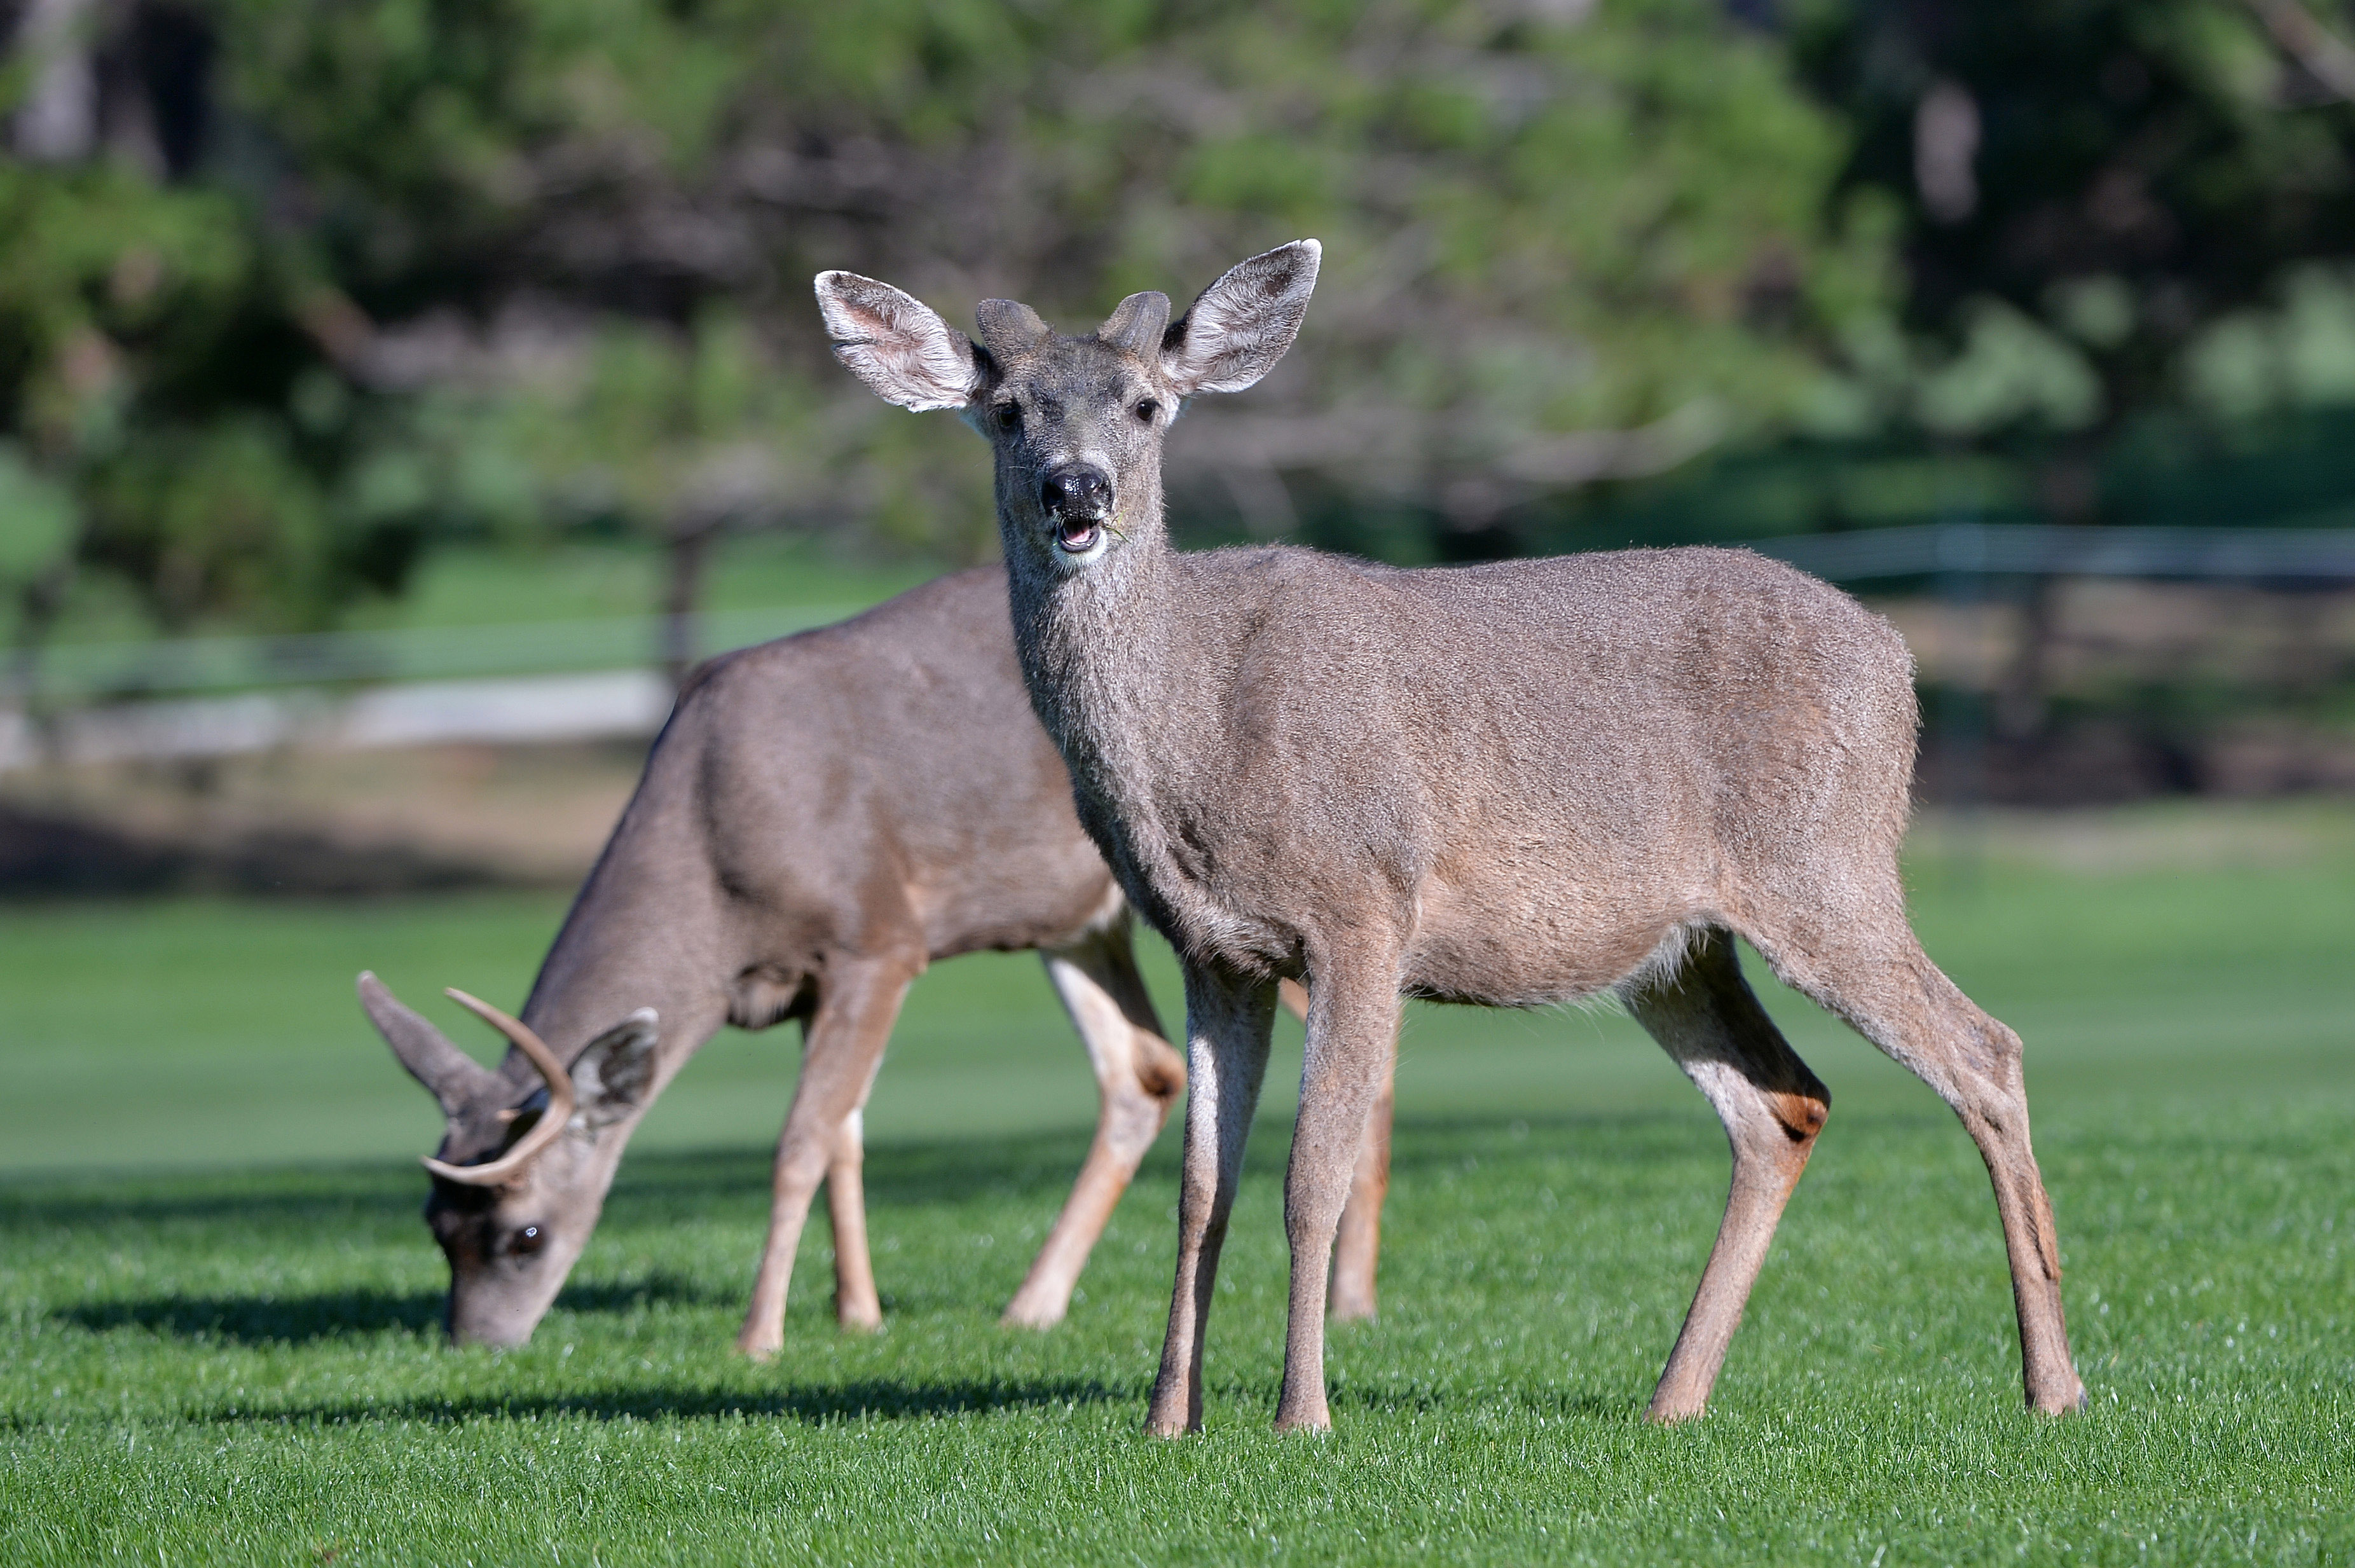 'Zombie' deer disease: How to prevent it and avoid eating infected meat